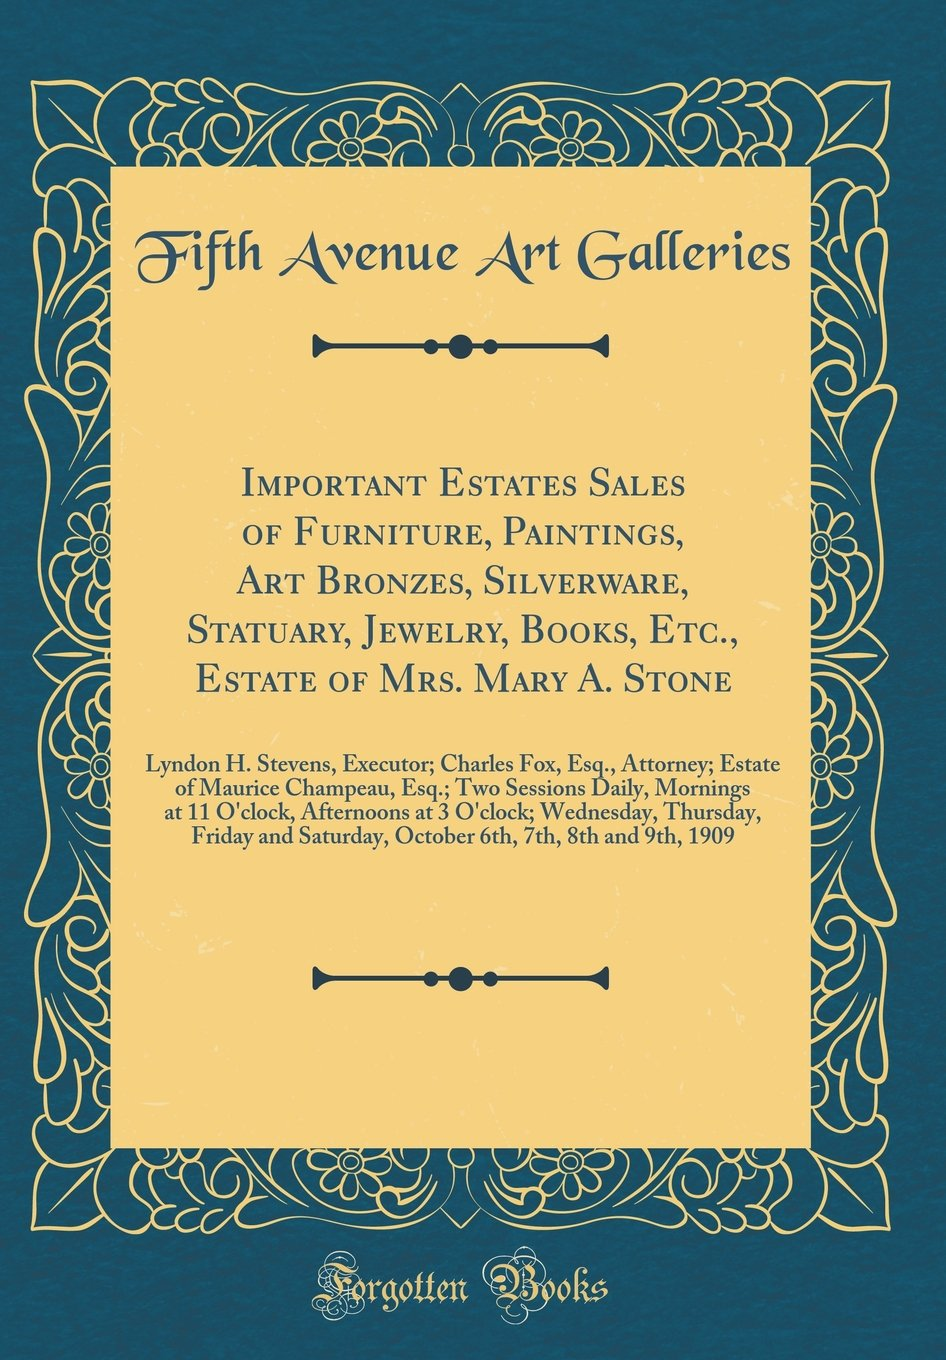 Download Important Estates Sales of Furniture, Paintings, Art Bronzes, Silverware, Statuary, Jewelry, Books, Etc., Estate of Mrs. Mary A. Stone: Lyndon H. ... Champeau, Esq.; Two Sessions Daily, Morning PDF Text fb2 book